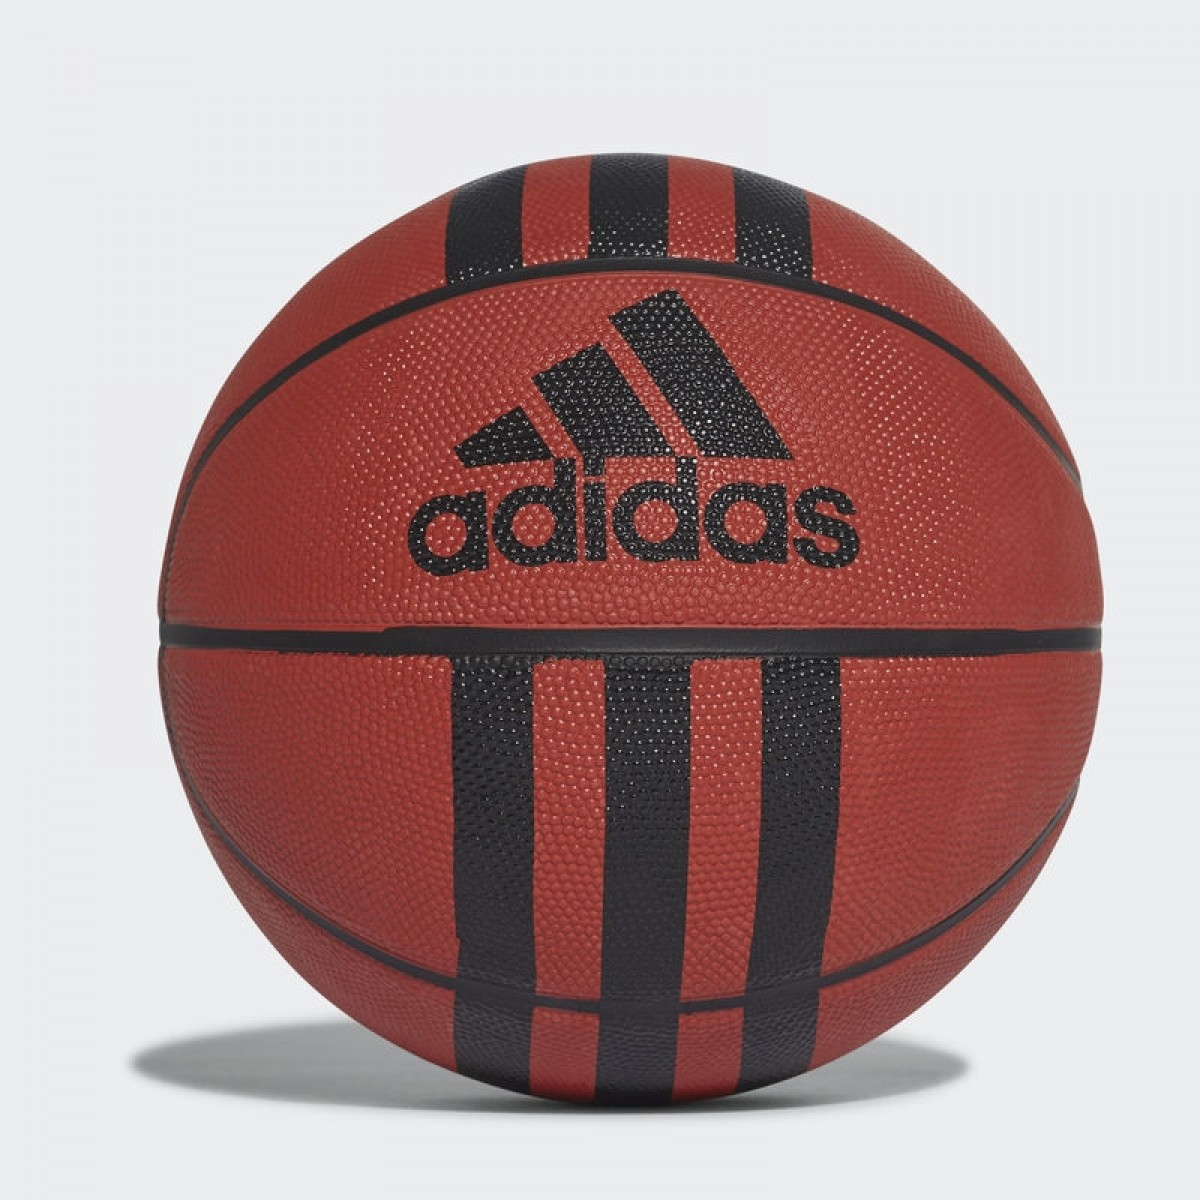 ADIDAS 3 Stripes Ball 'Orange'